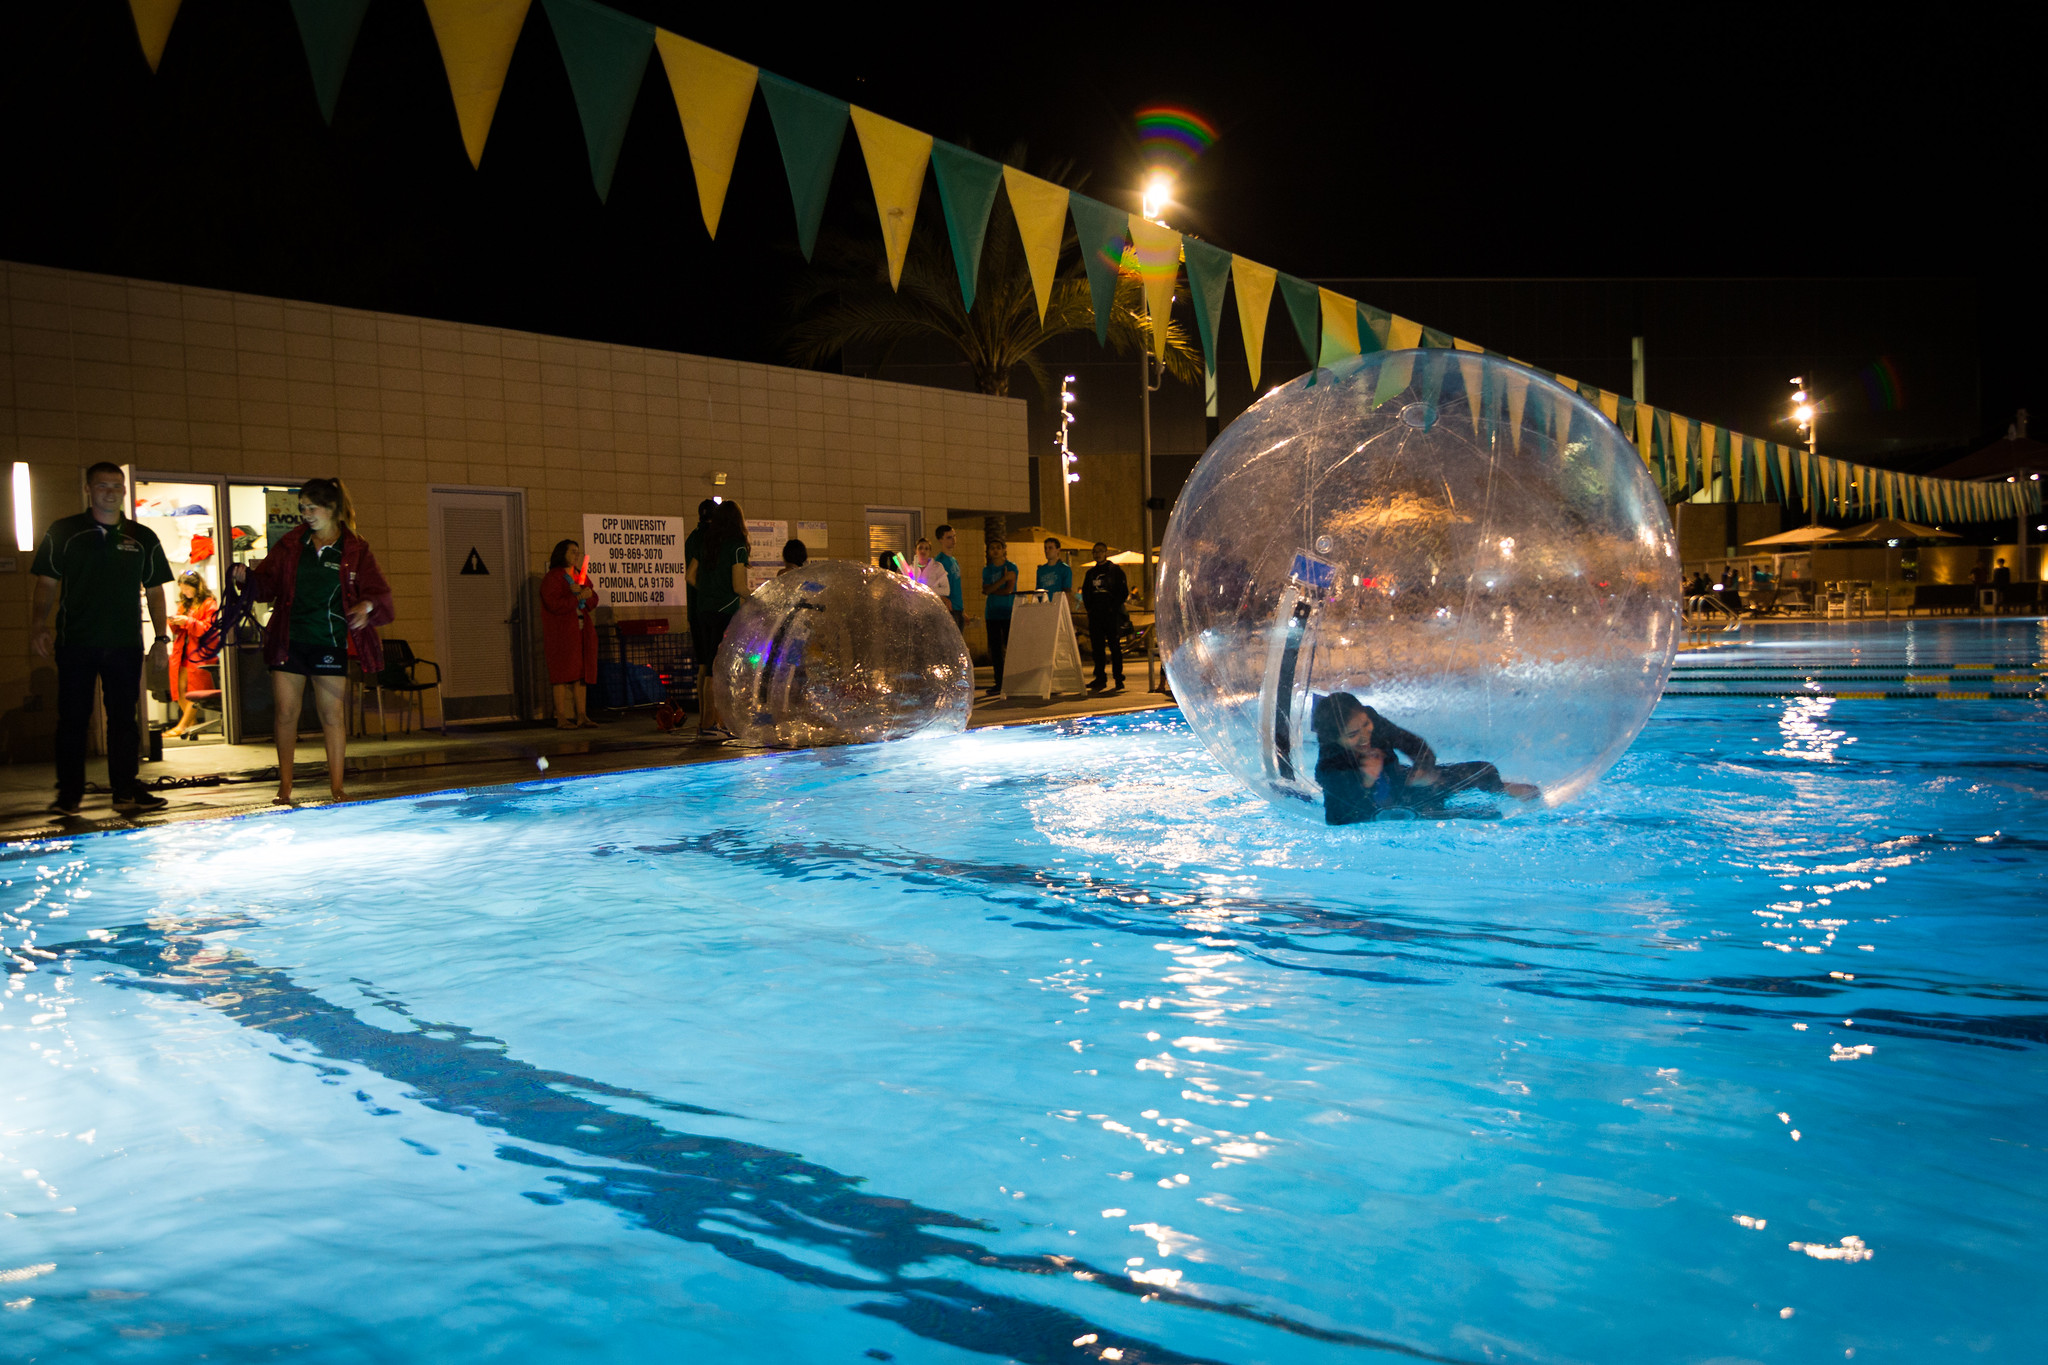 person falling in hamster ball in pool